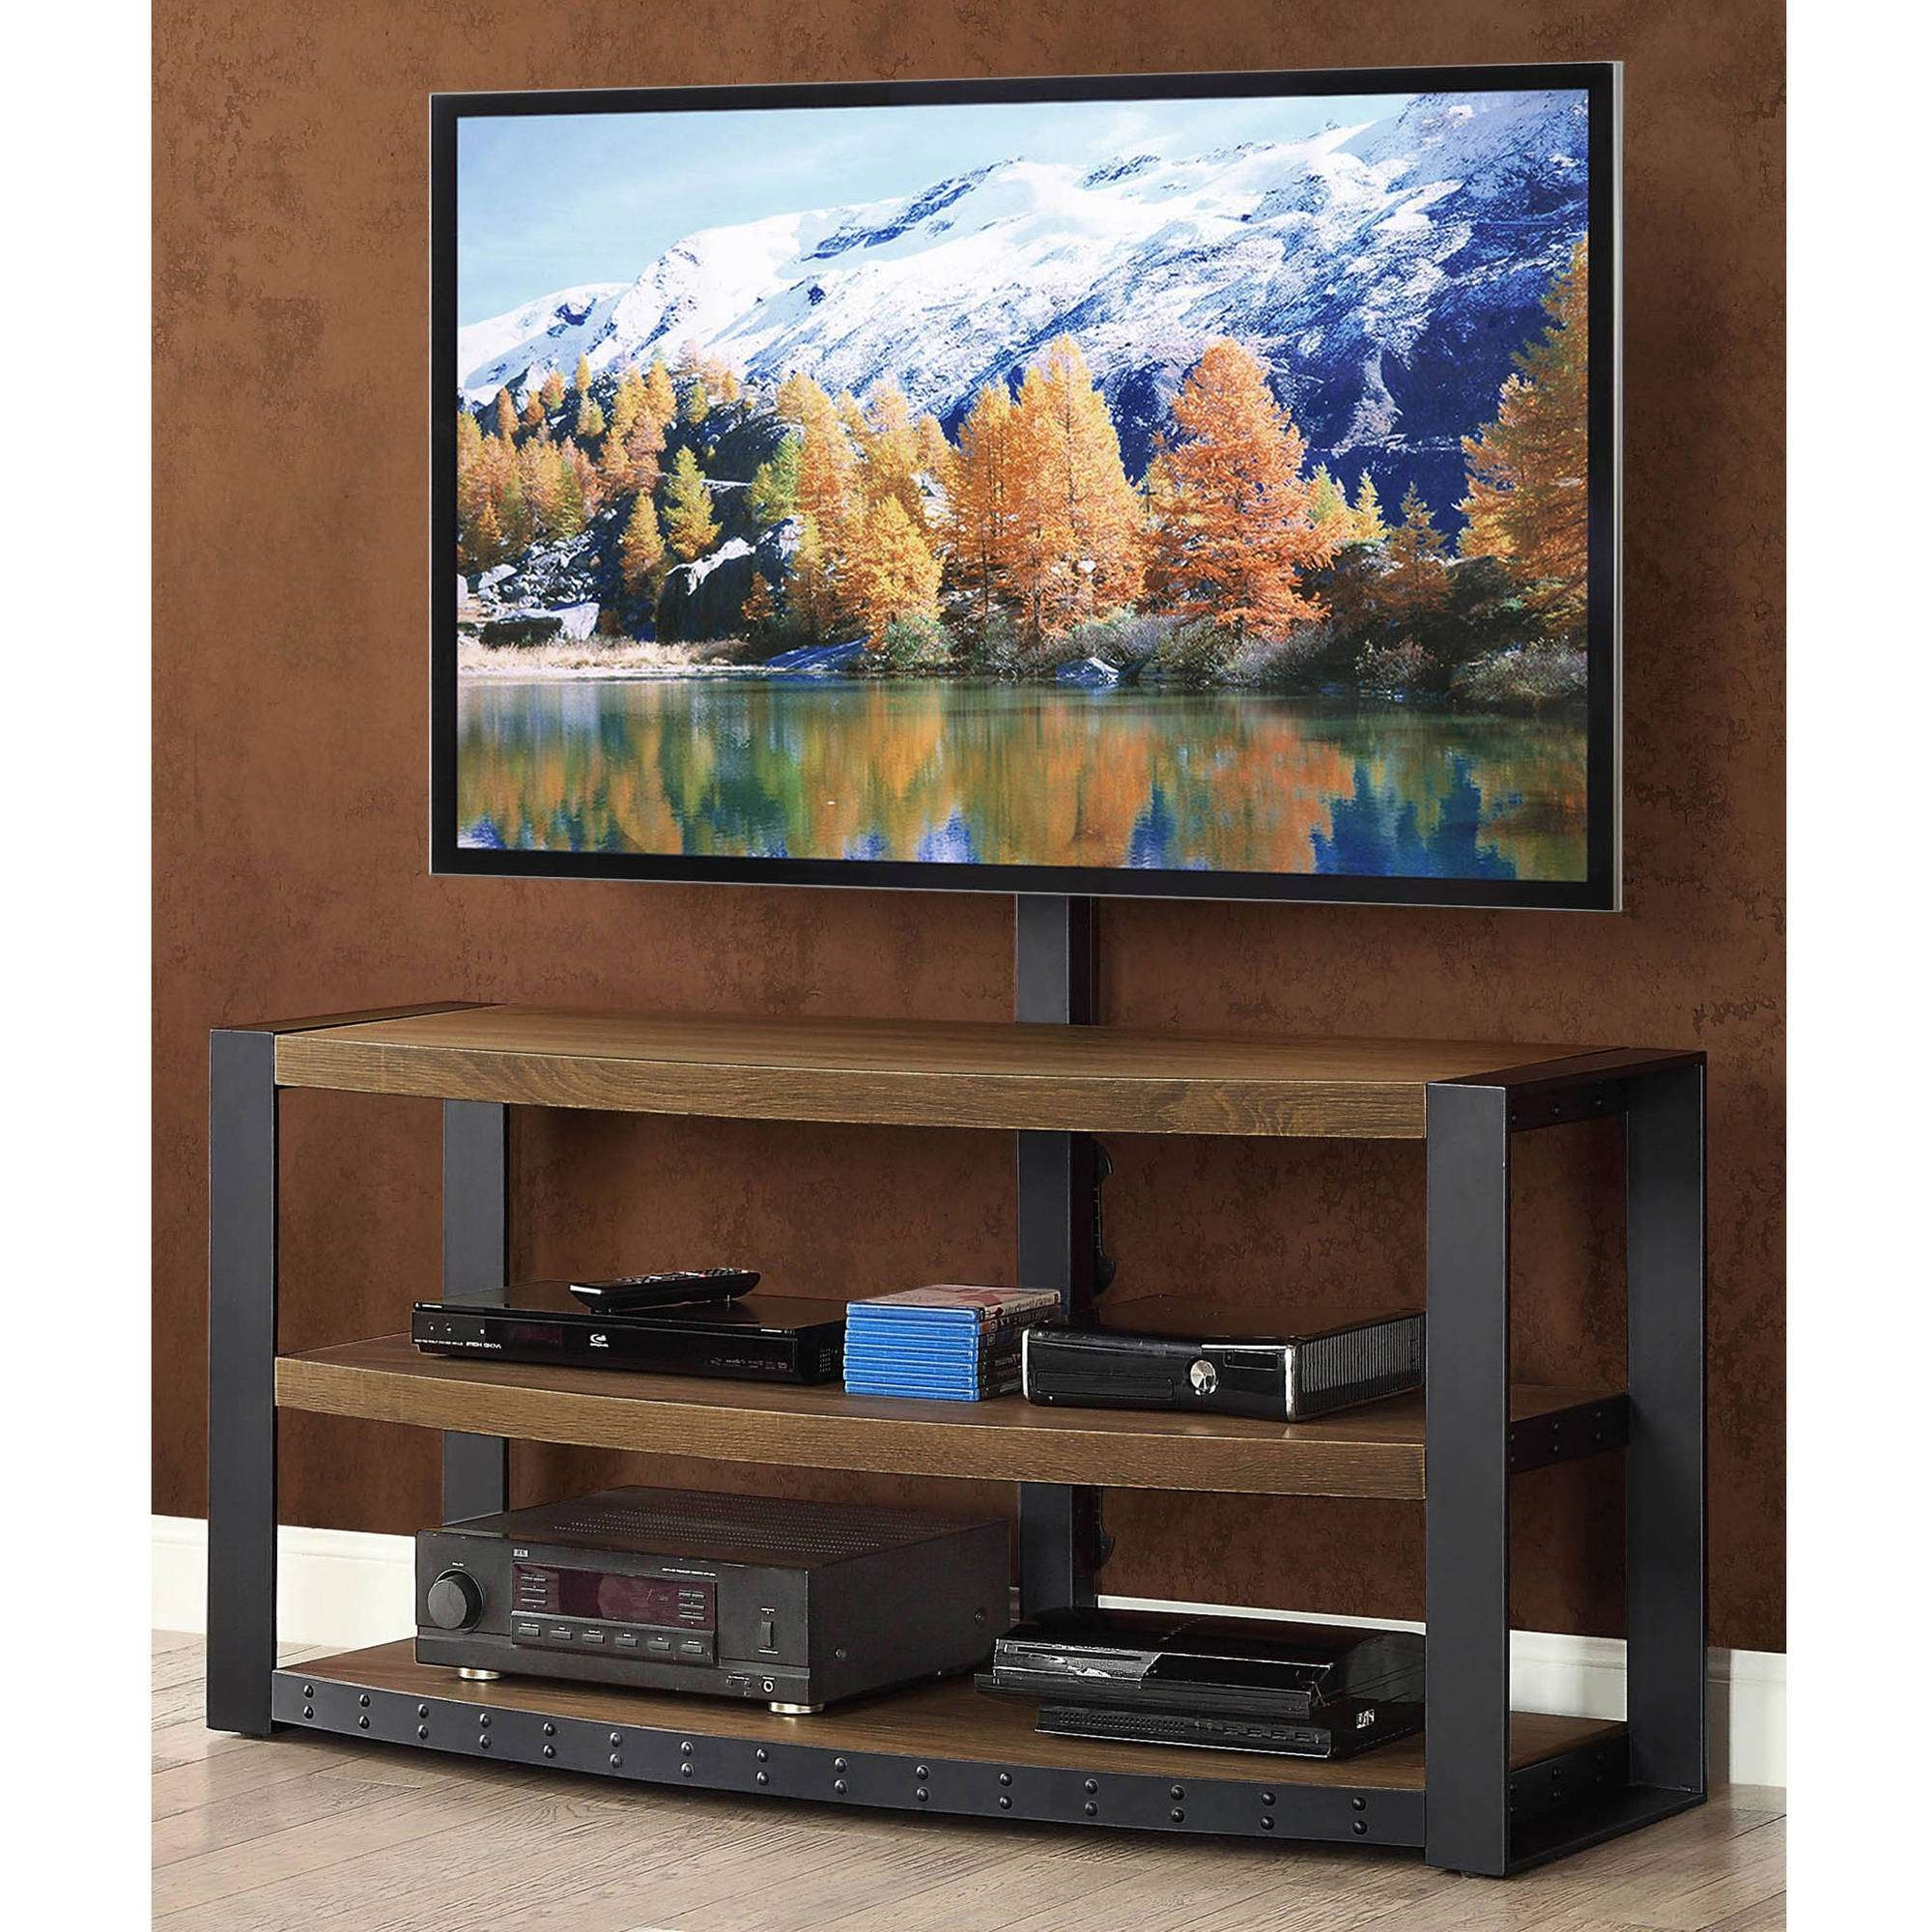 """Whalen Santa Fe 3 In 1 Tv Stand For Tvs Up To 65"""", Warm Ash Finish Within Wood Tv Stands With Swivel Mount (View 13 of 15)"""